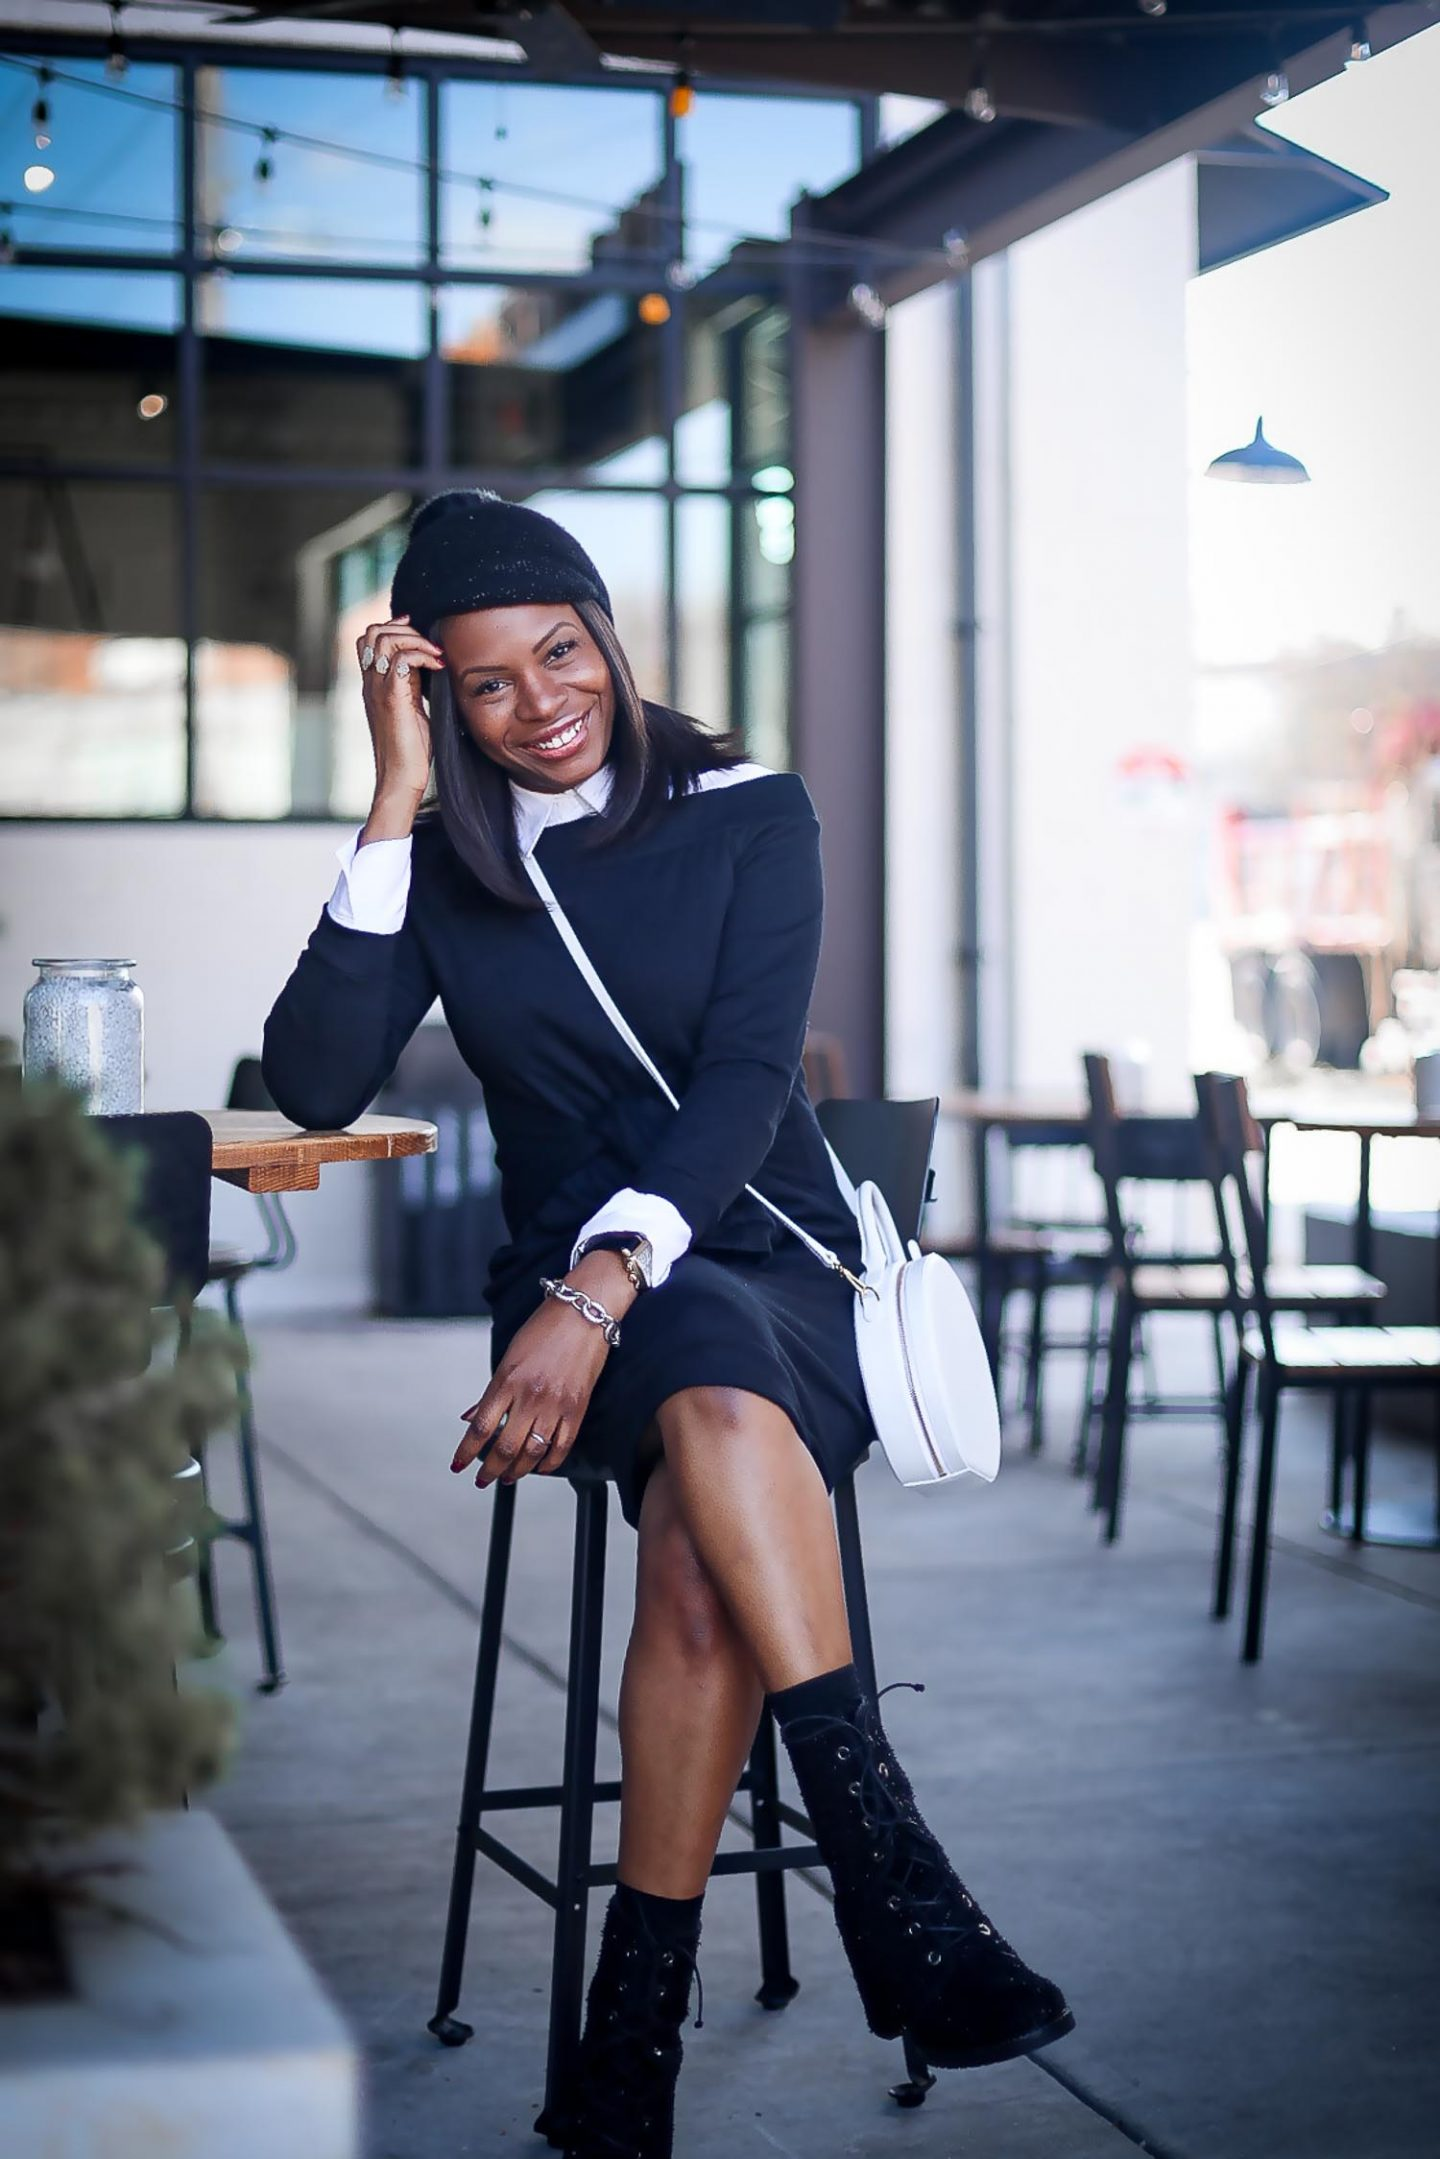 HOW TO MAKE A SWEATSHIRT DRESS AND COMBAT BOOTS CHIC